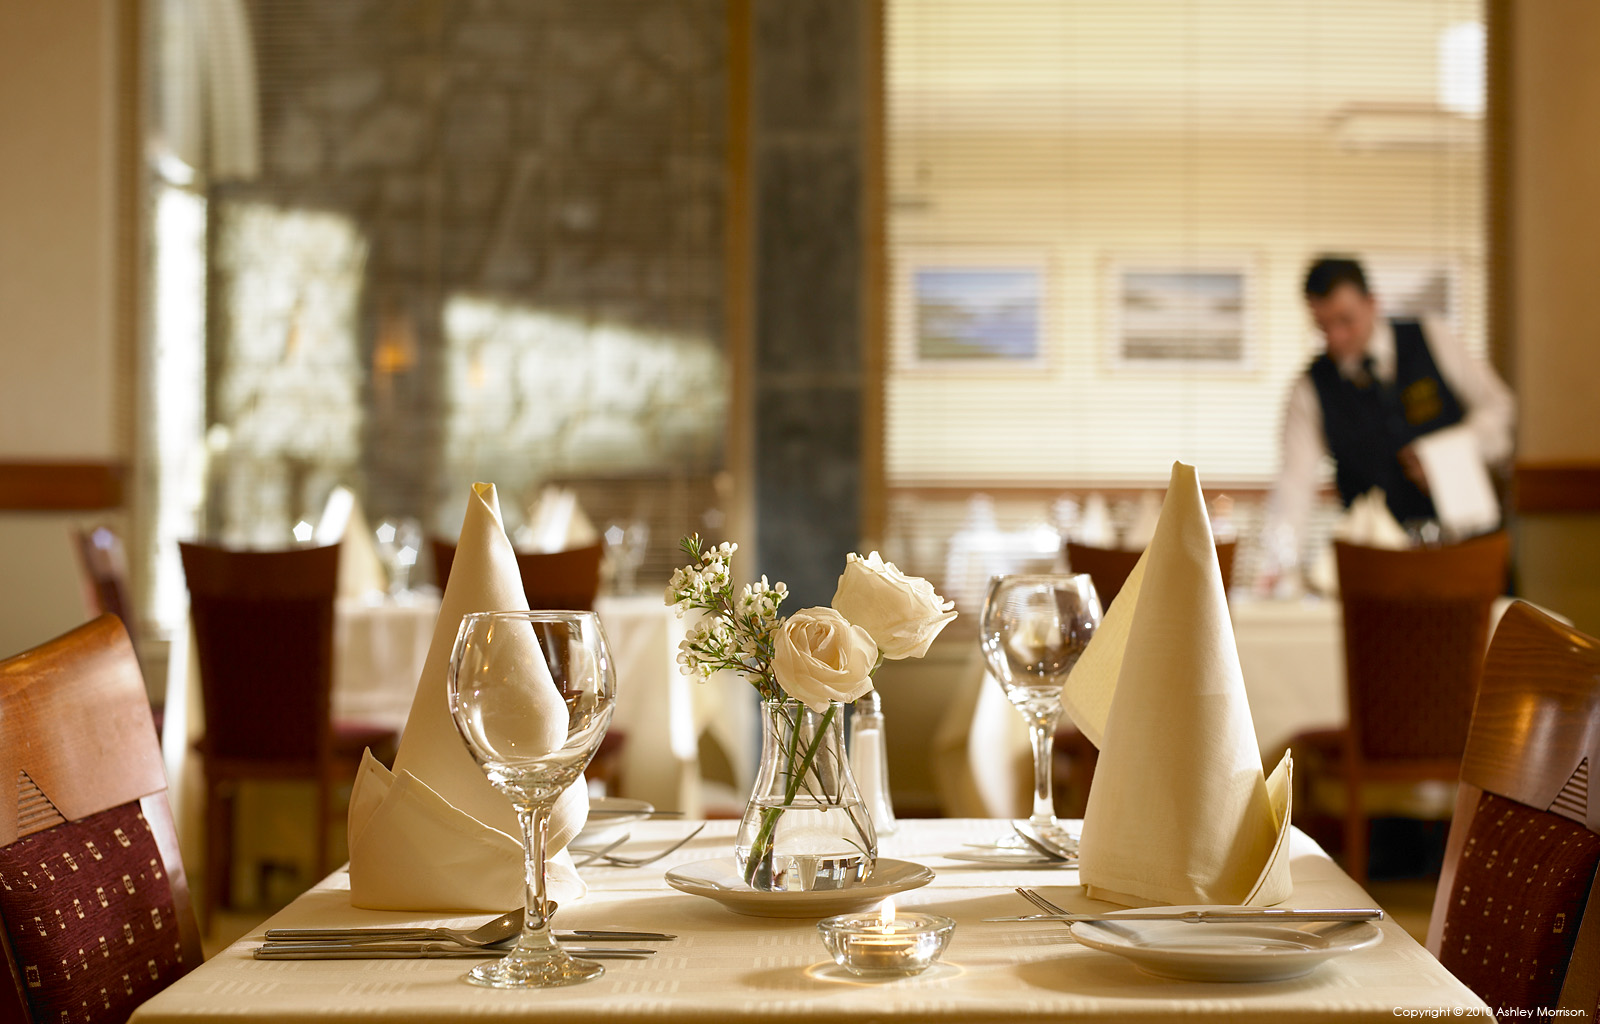 Deerfield restaurant at the Clare Inn Hotel in County Clare by Ashley Morrison.